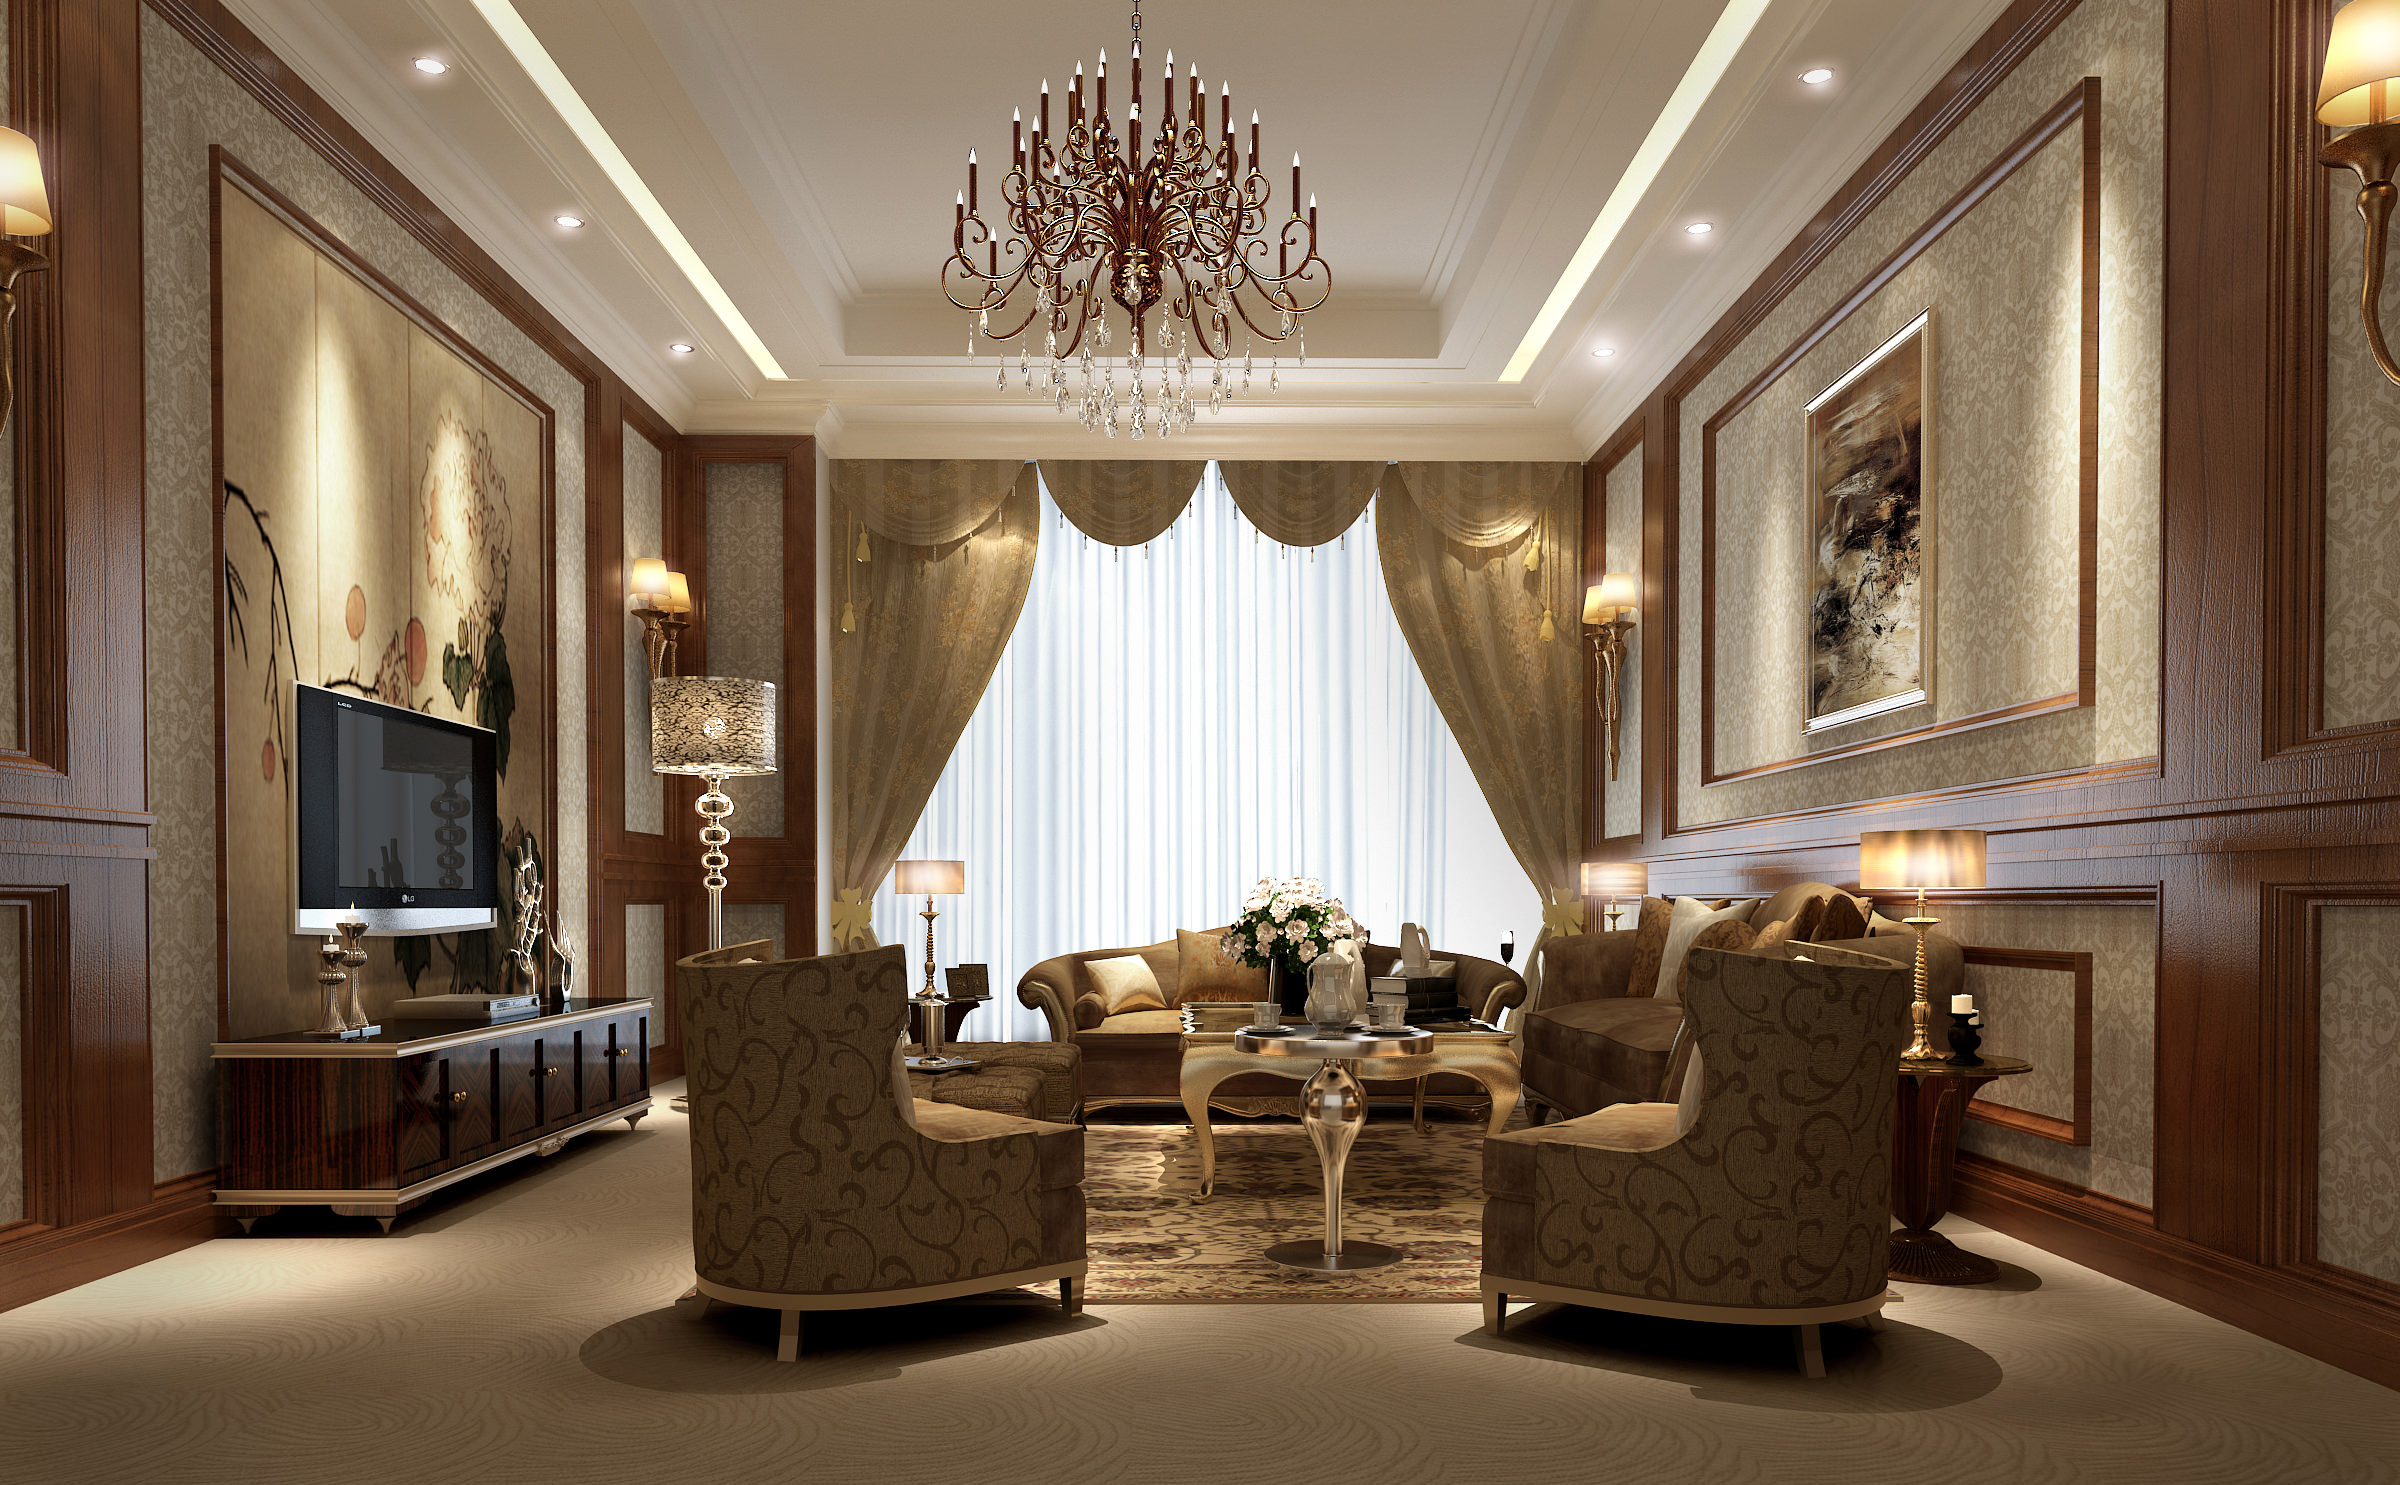 Luxury living room 3d model max for 3d room decoration